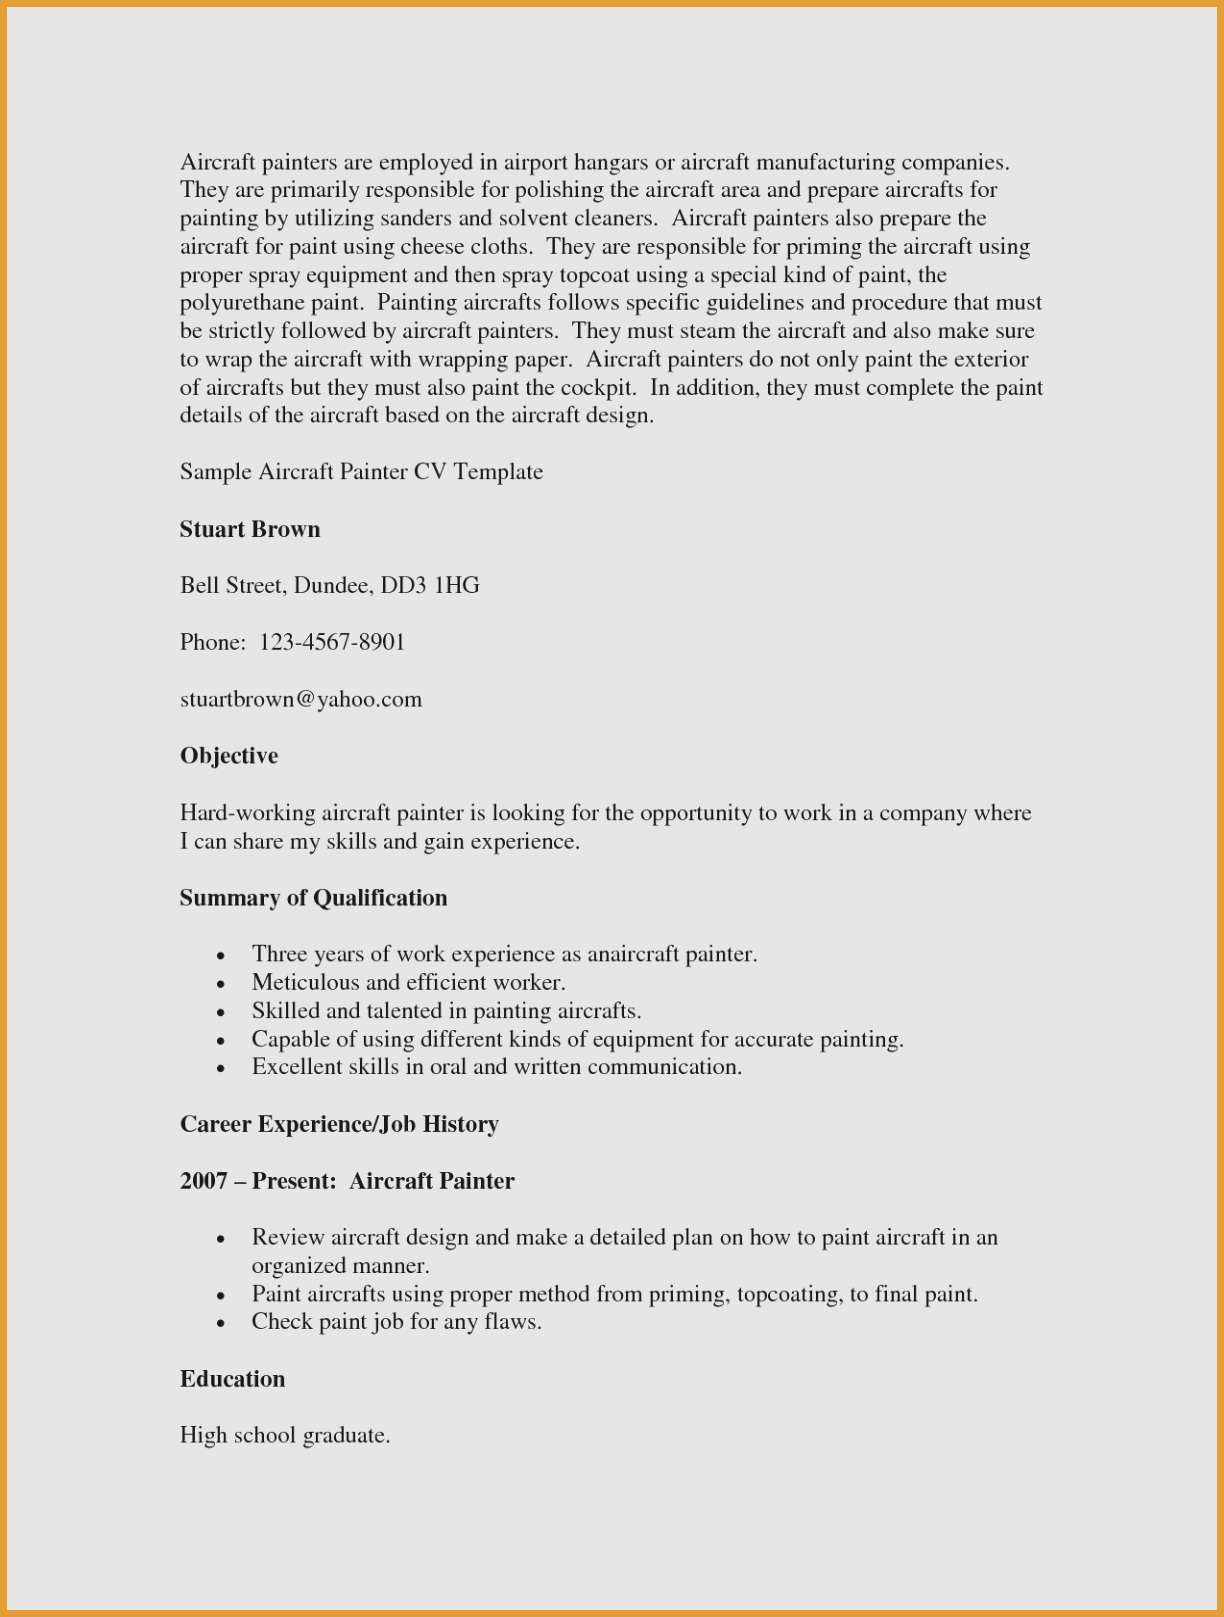 Resume for Law School Application Template - Sample Law School Resume Wording for Resume Education Resume